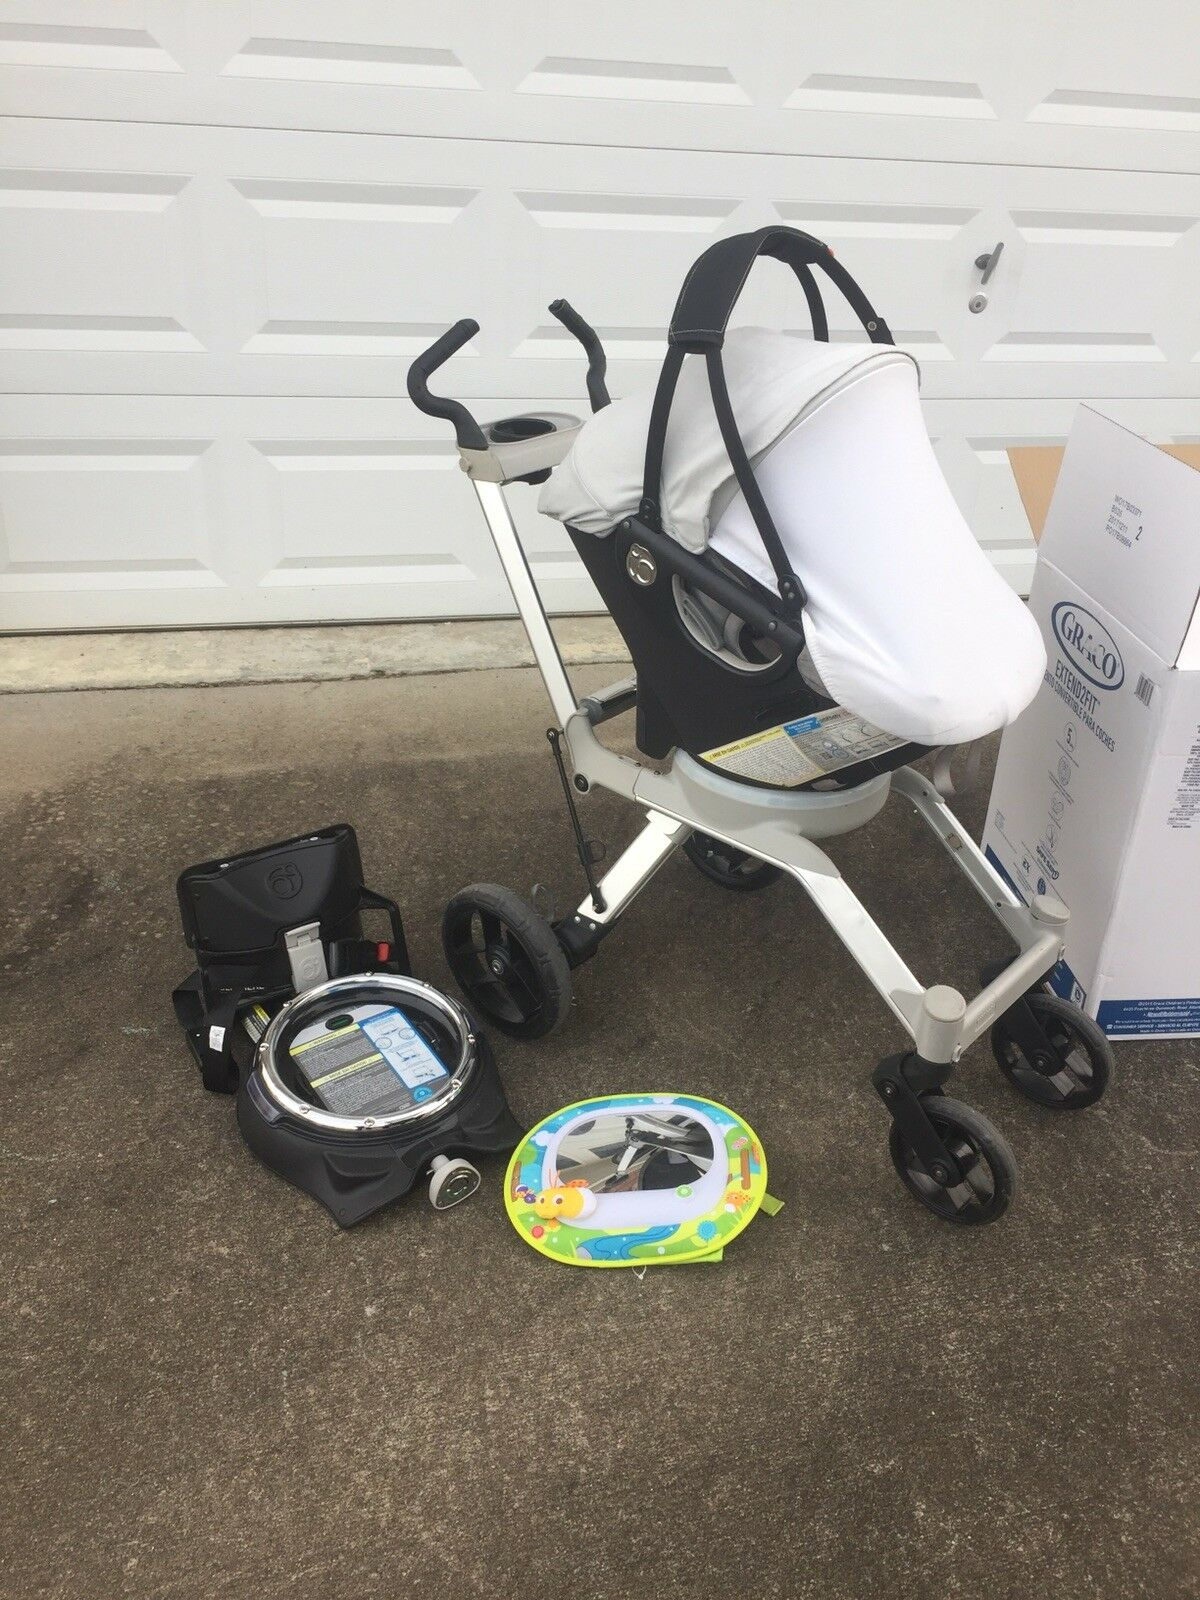 Orbit Baby Infant Car Seat Bas Stroller And Travel Bag 1 Of 5Only Available